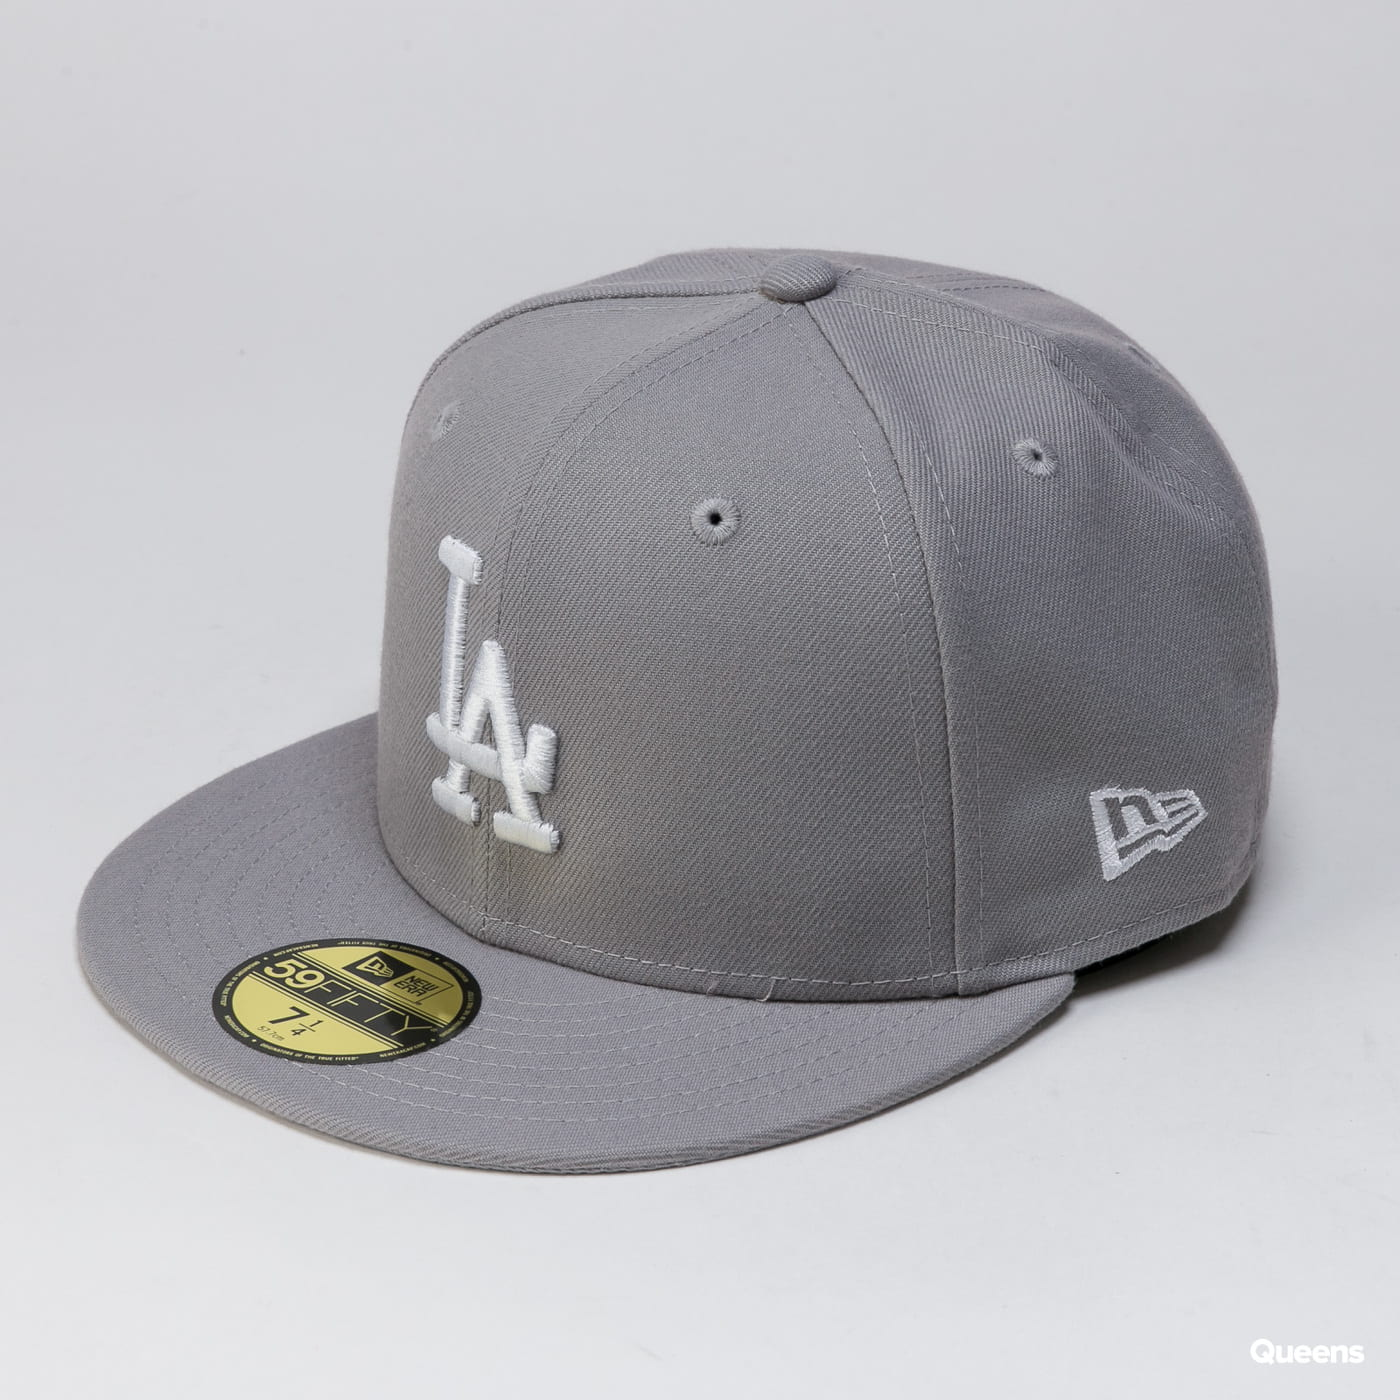 New Era MLB Basic LA C/O grau / weiß